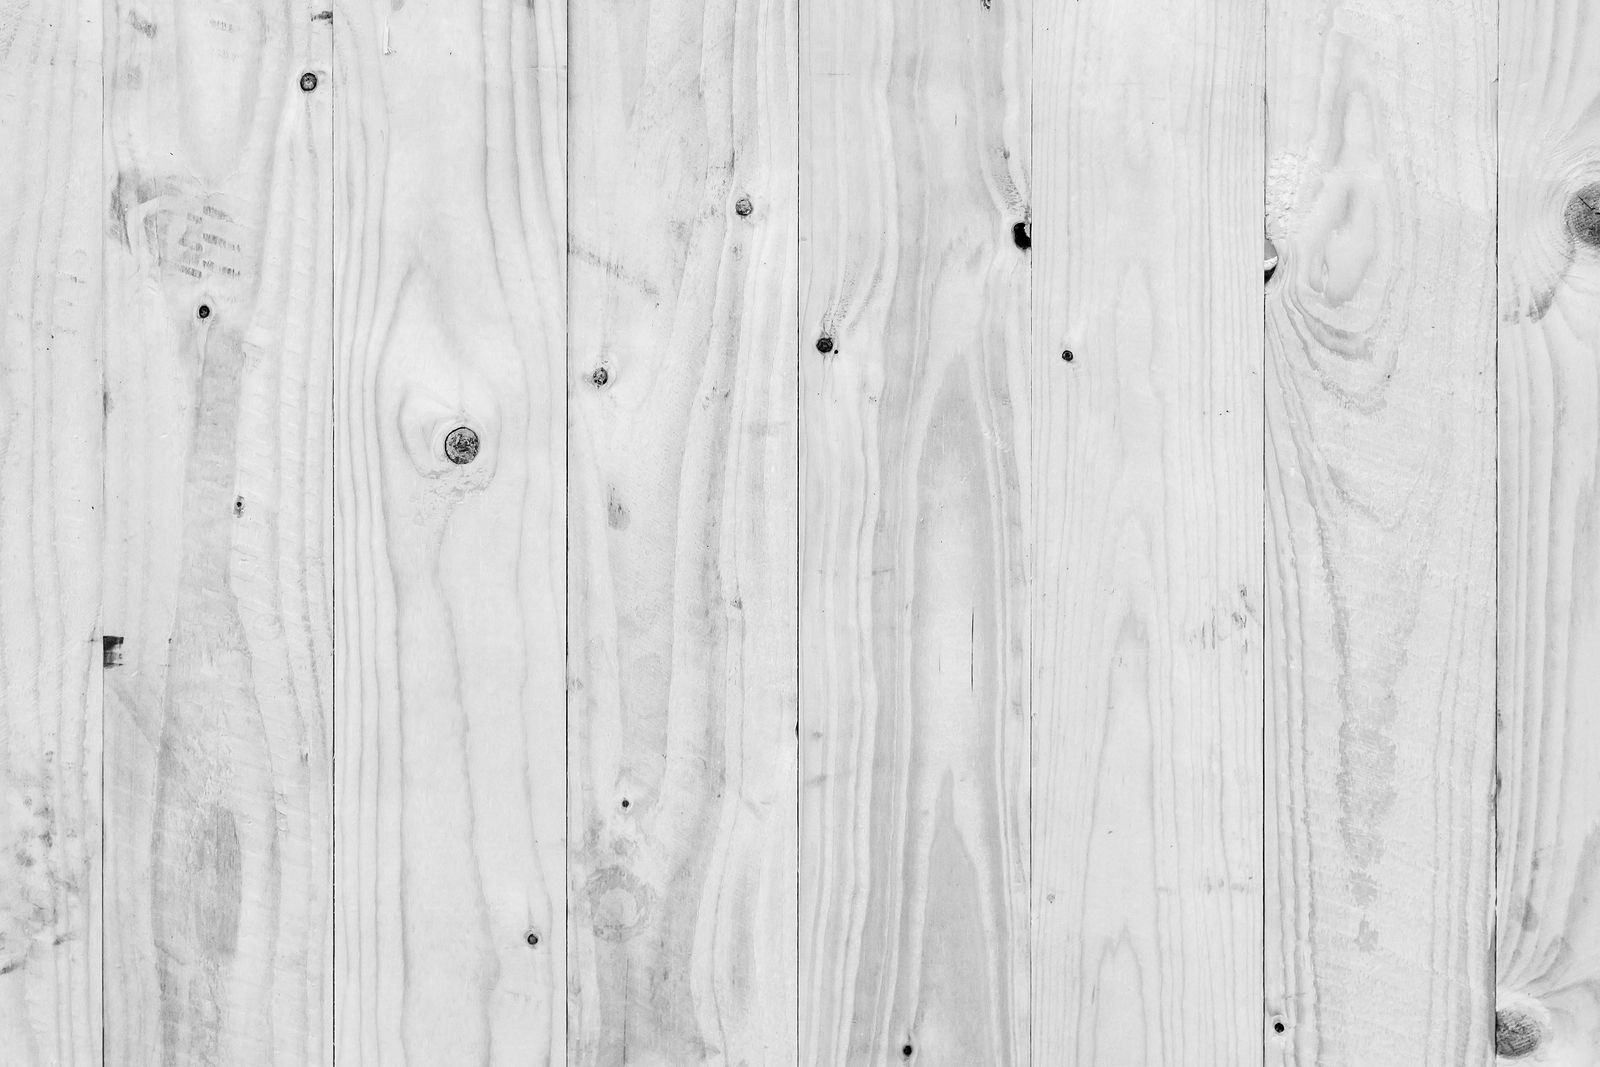 grunge white wood and rustic wood background texture | For ...